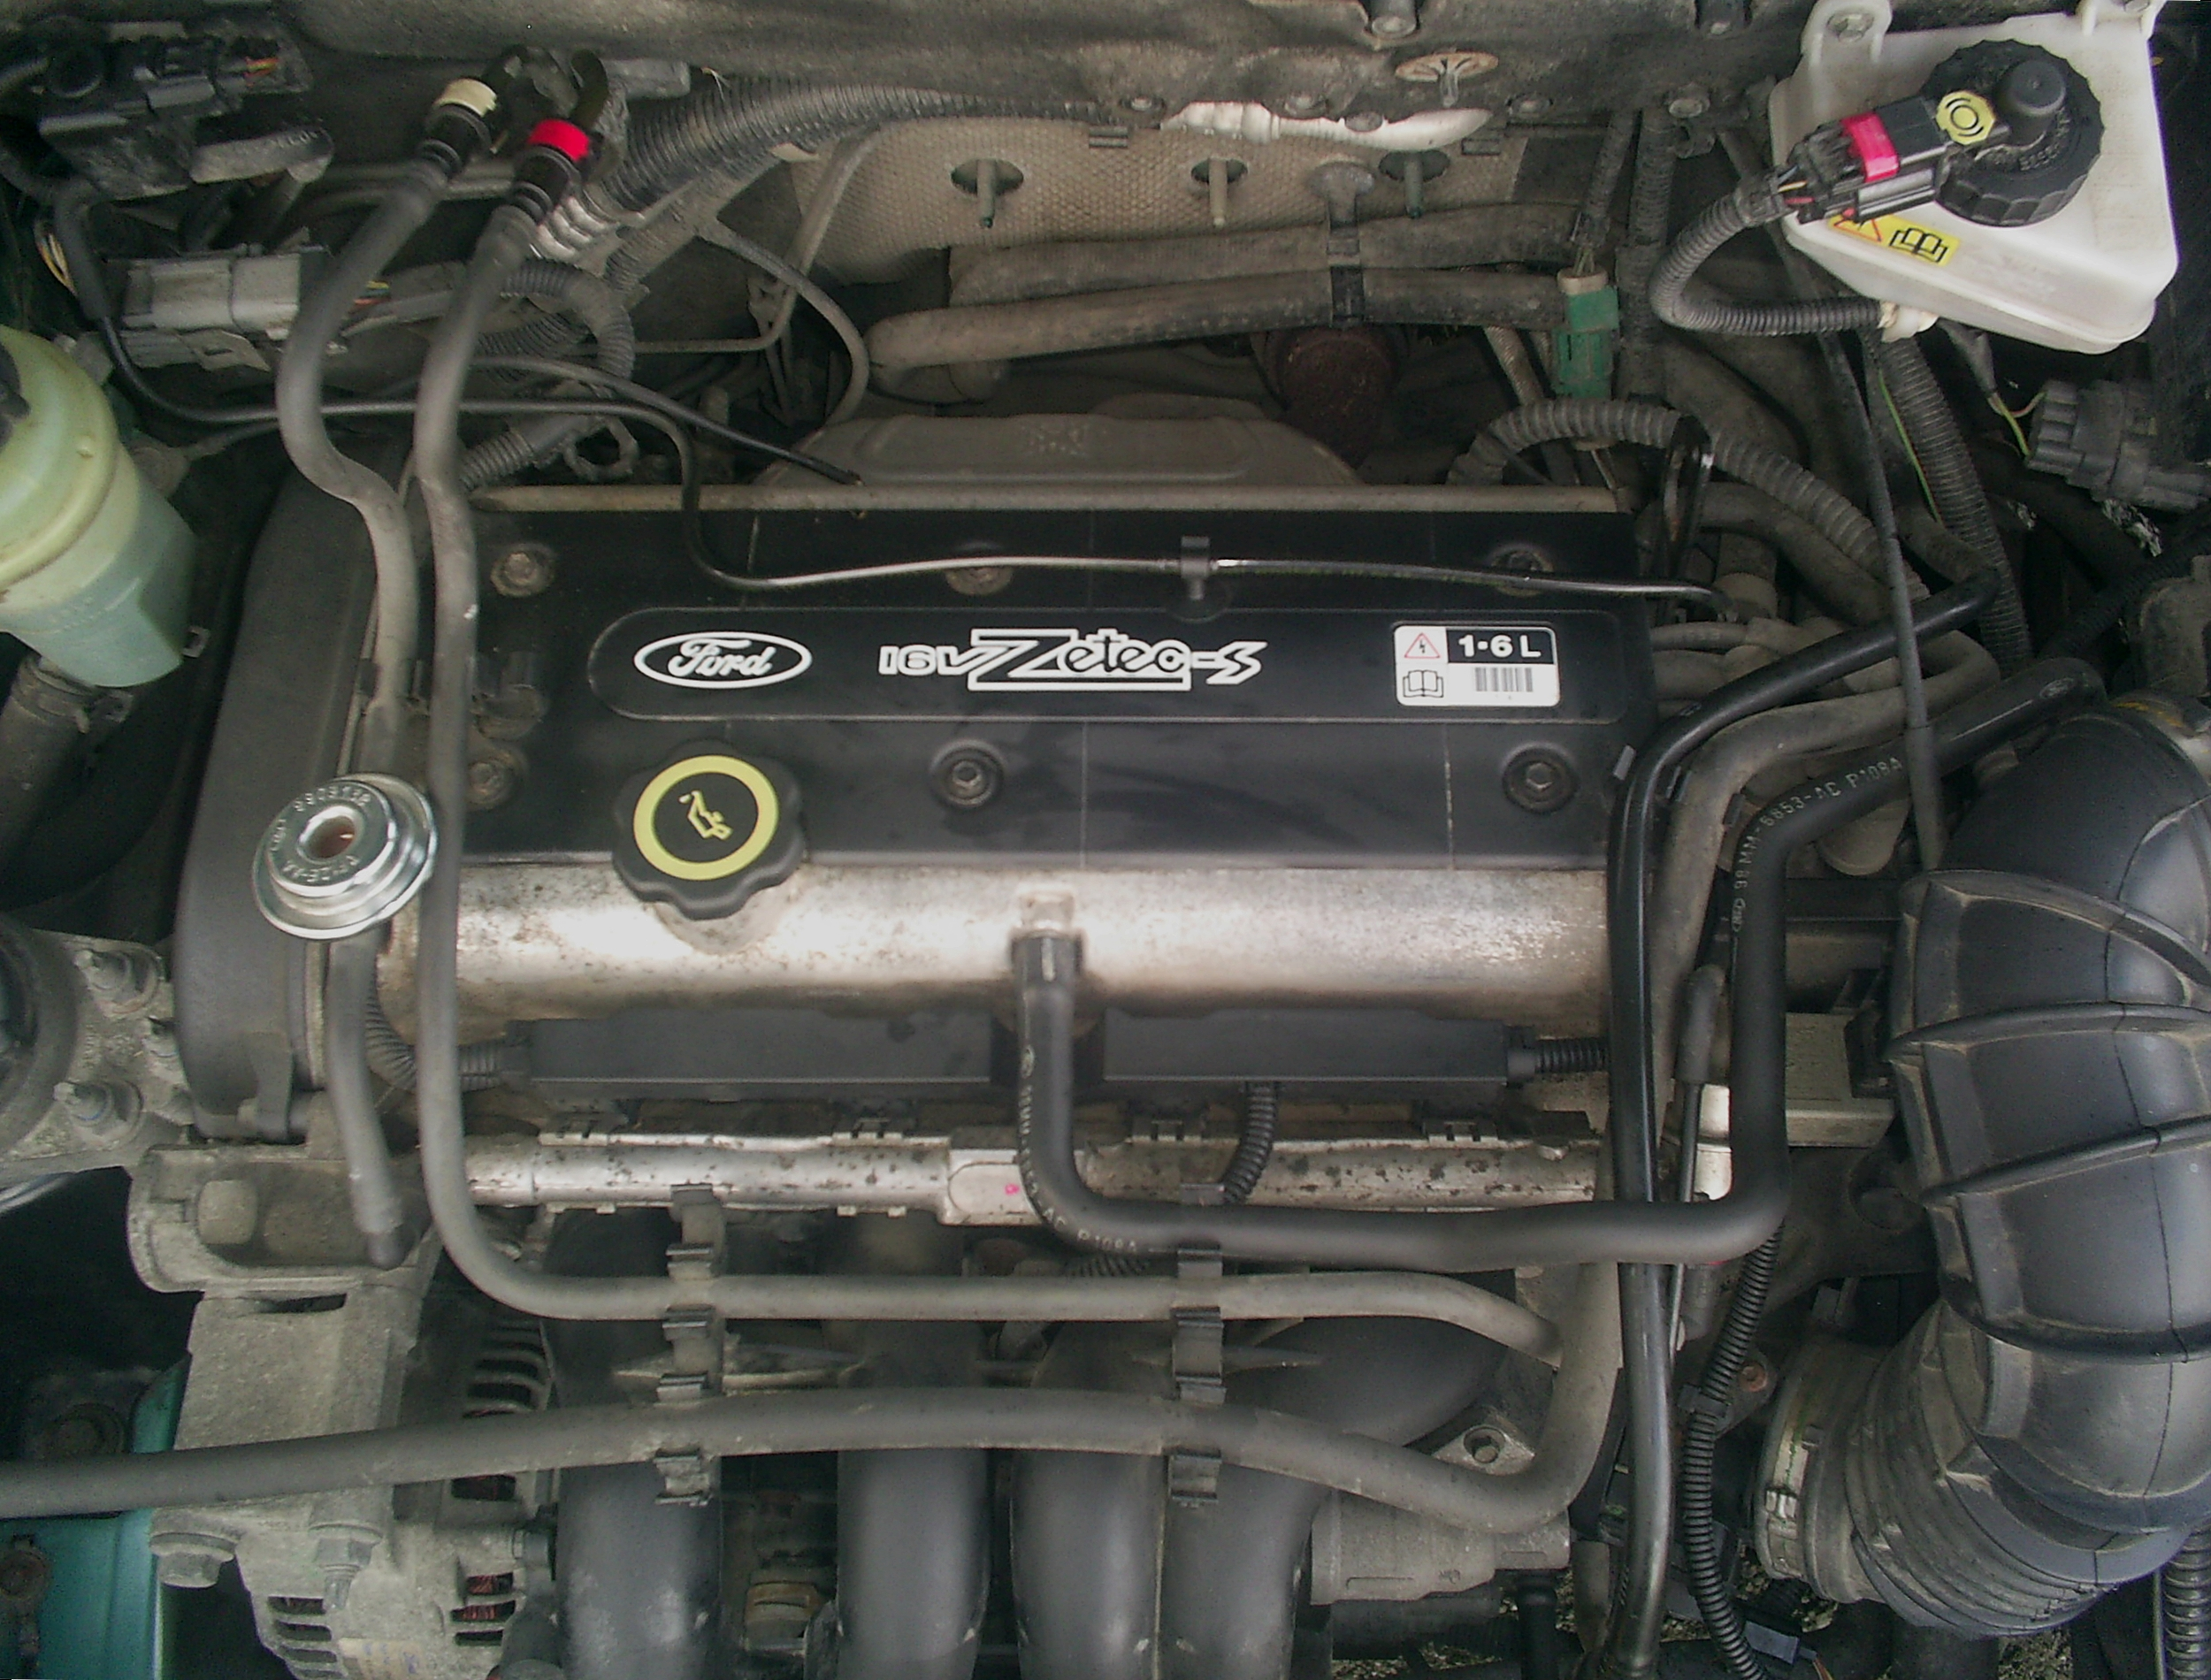 https://upload.wikimedia.org/wikipedia/commons/9/92/1999_Ford_Zetec-R_engine.jpg